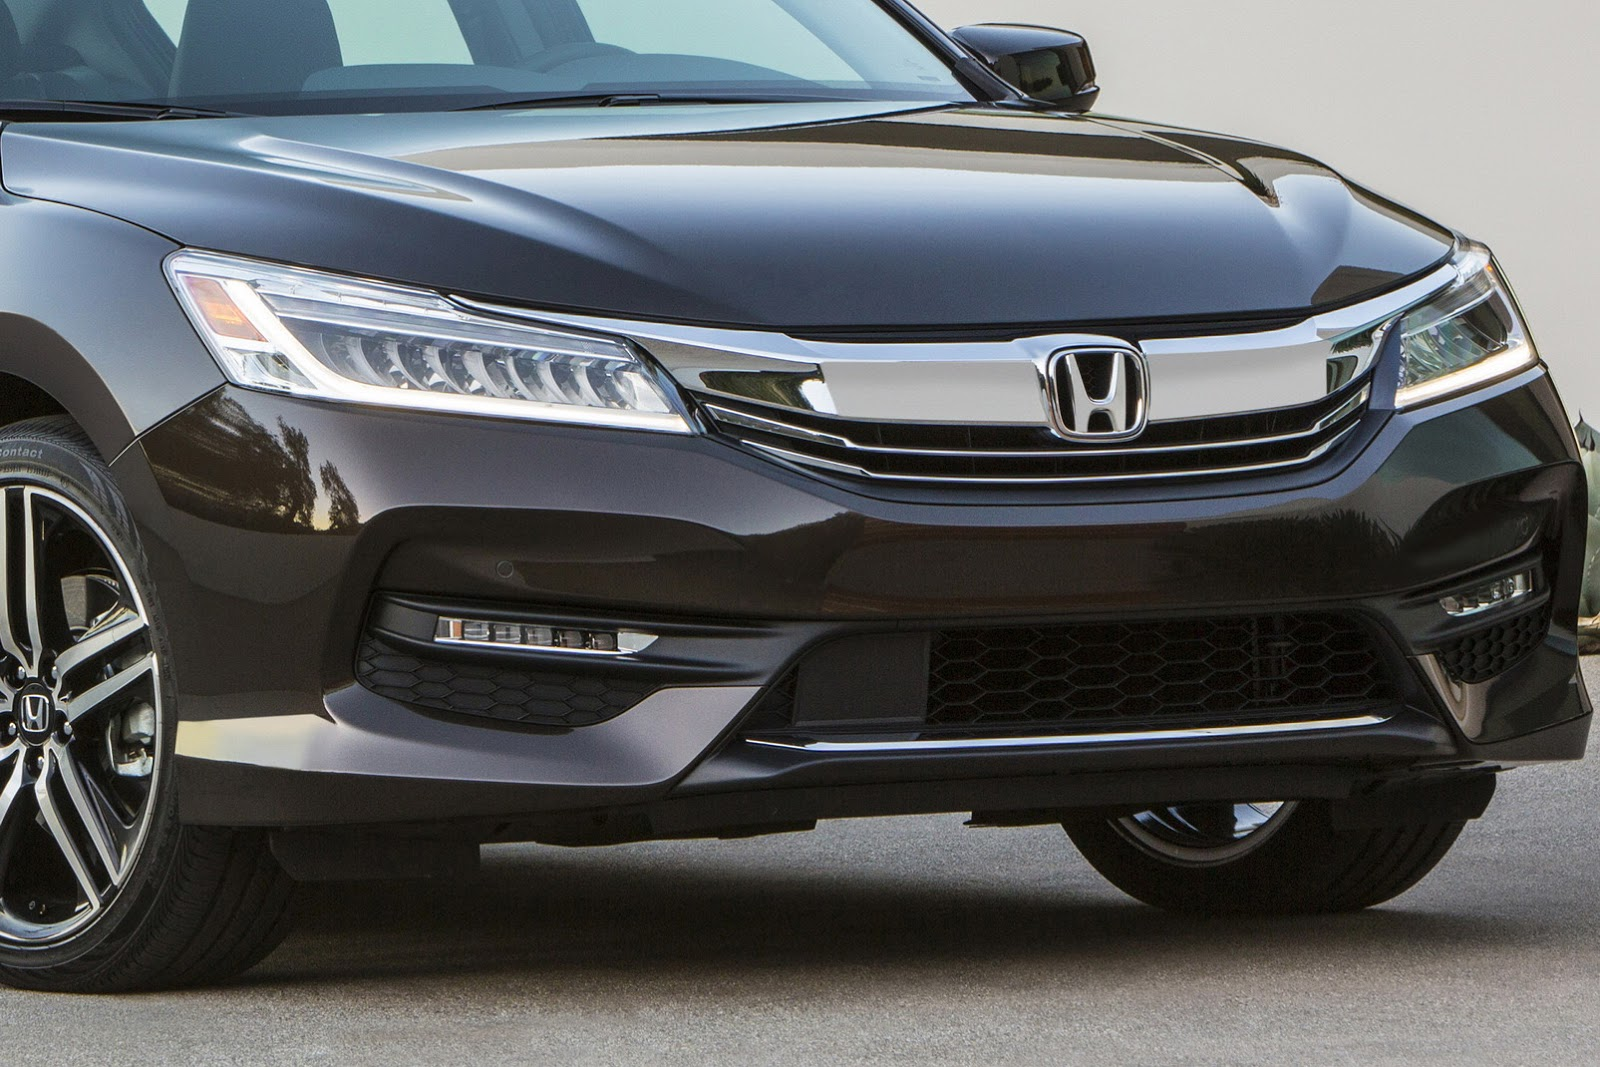 Honda Debuts 2016 Accord Facelift, We Visually Compare It With The 2015MY | Carscoops